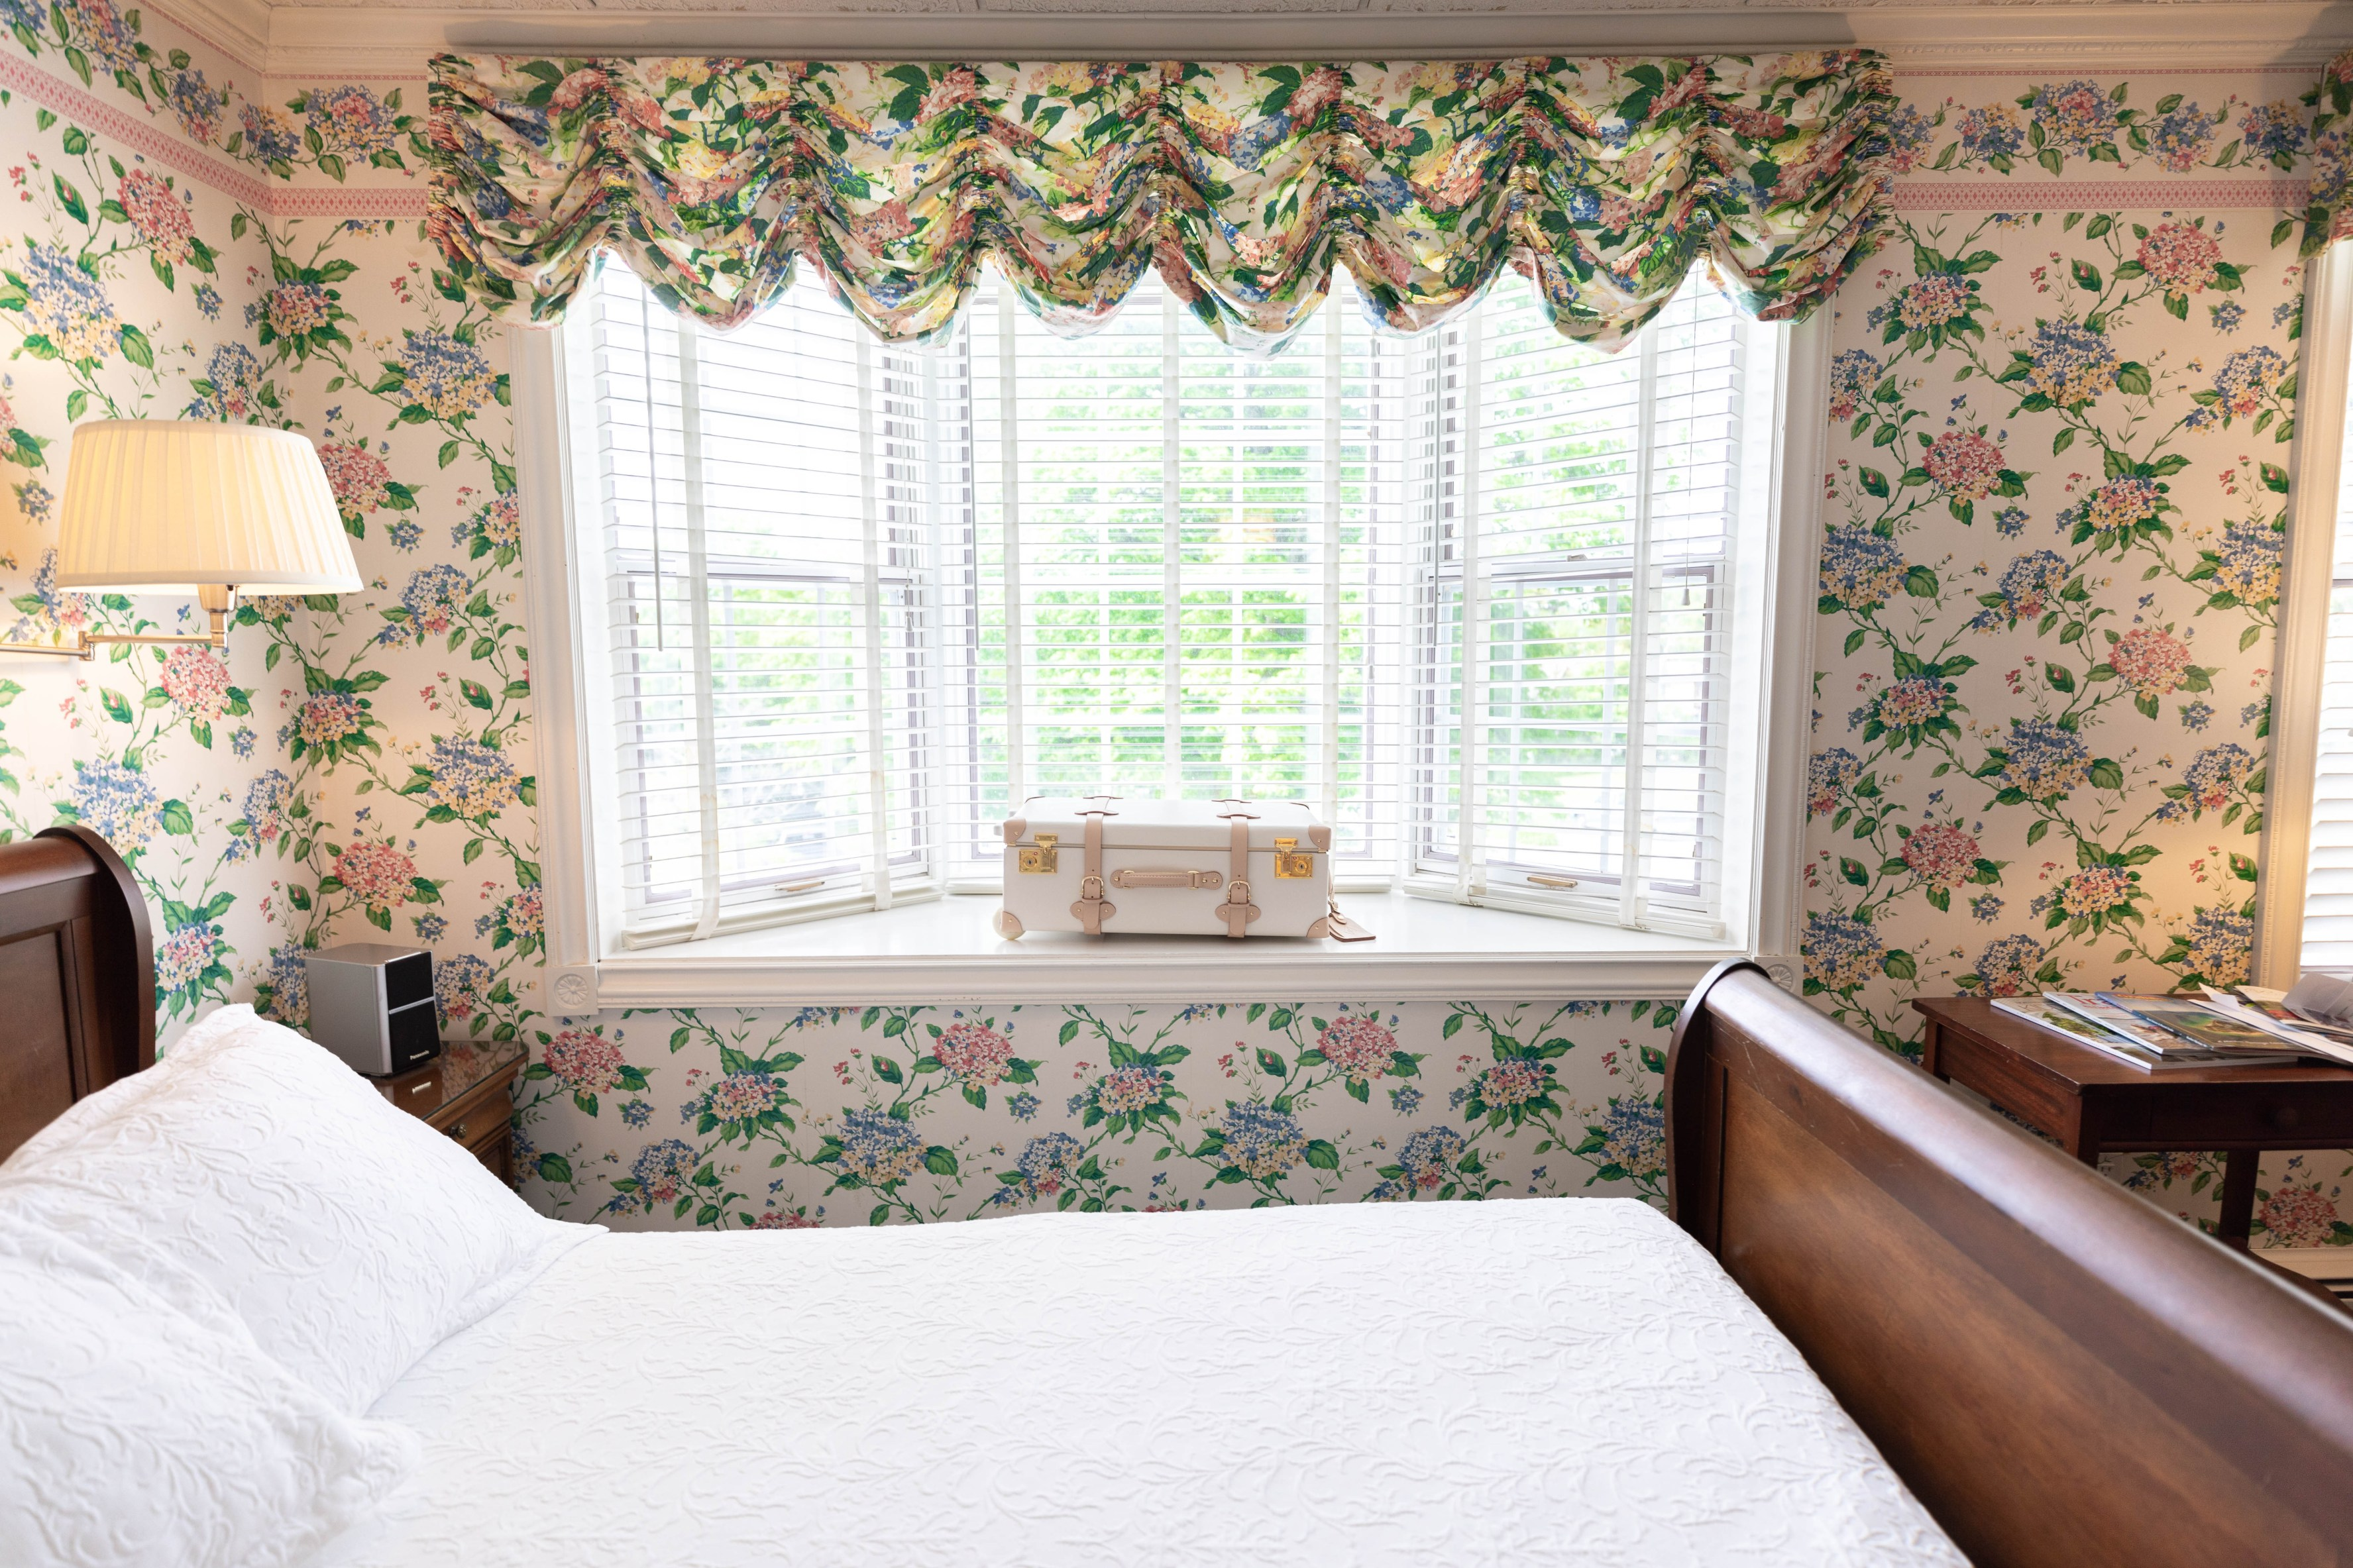 Stafford's Bay View Inn in Bay View Petoskey Area Northern Michigan Luxury Hotels Historic Hotels by Annie Fairfax